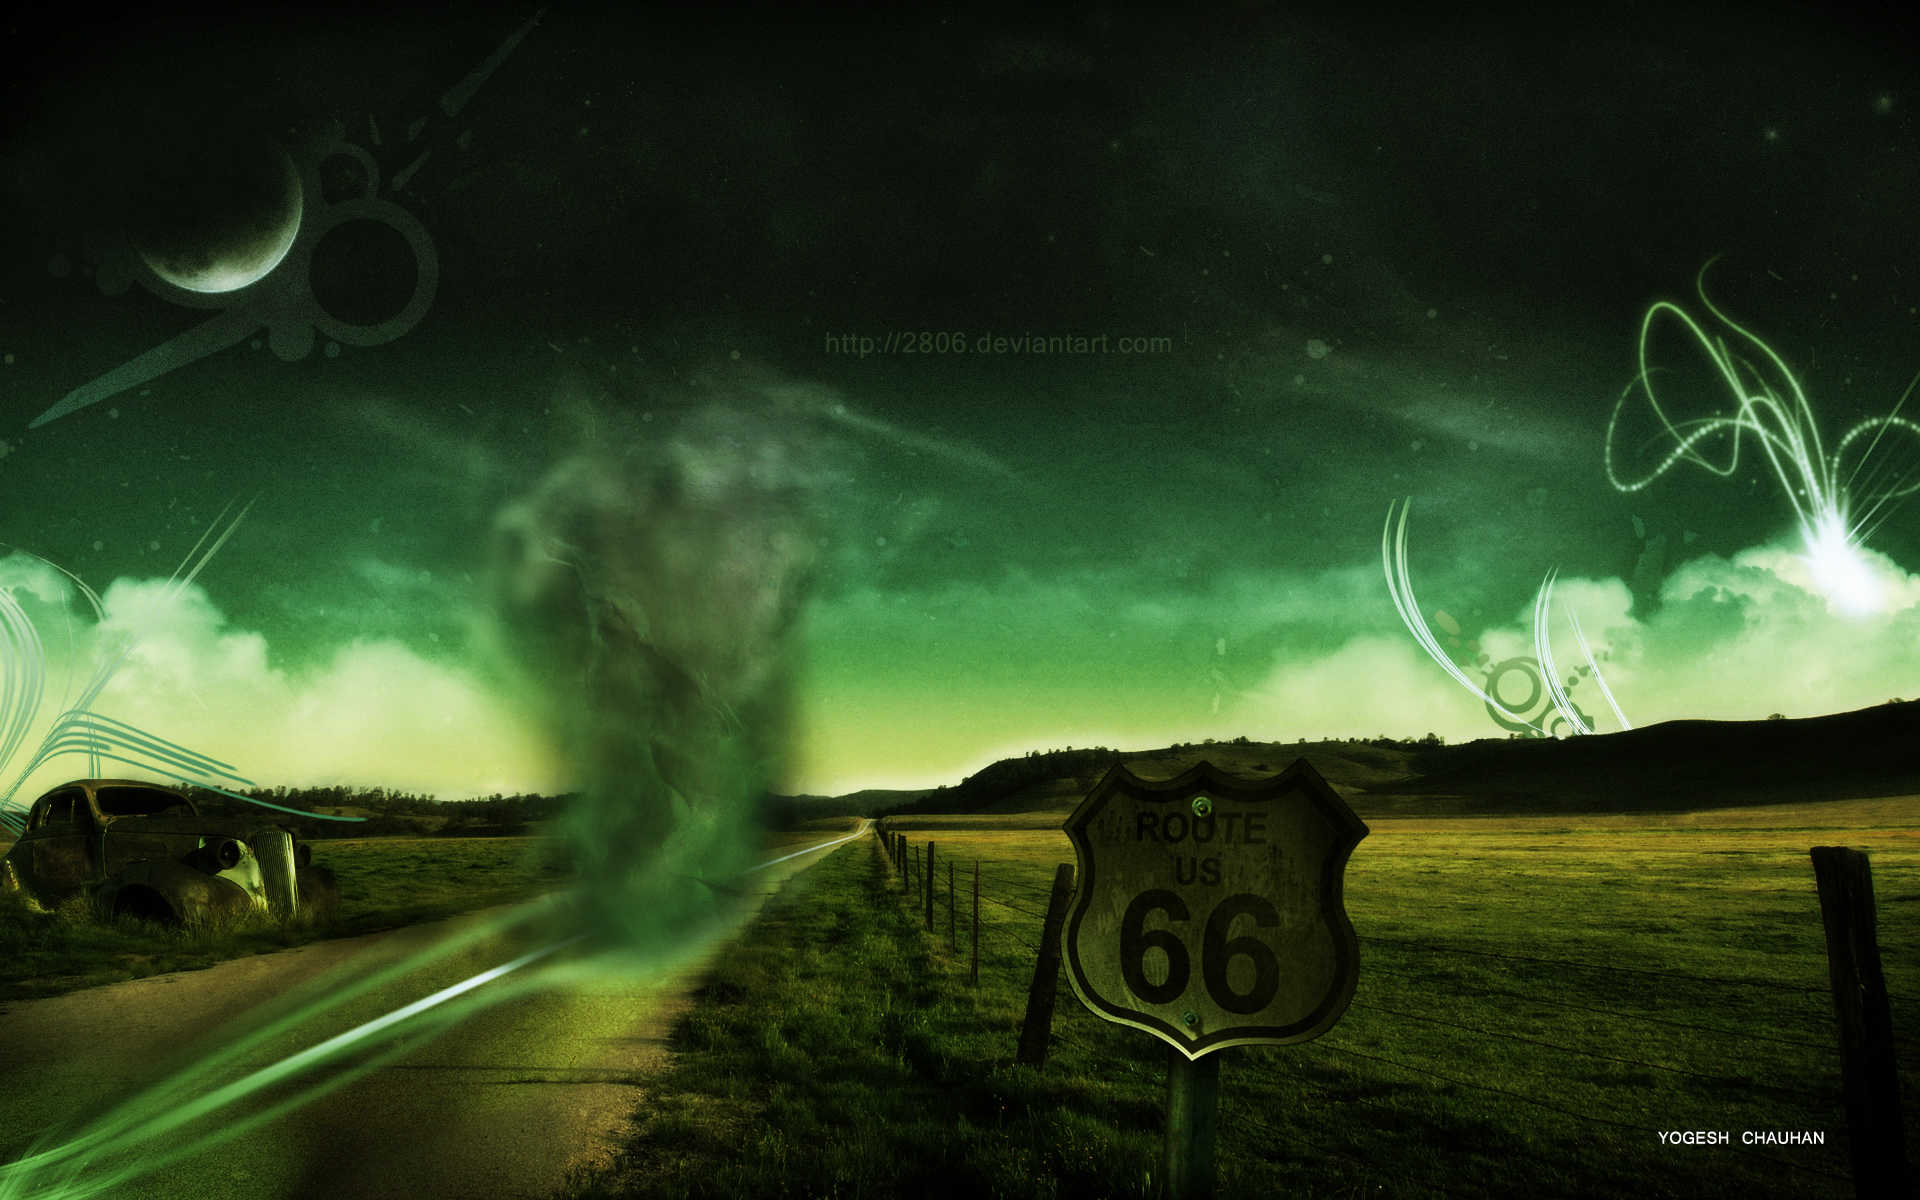 Route 66 by 2806